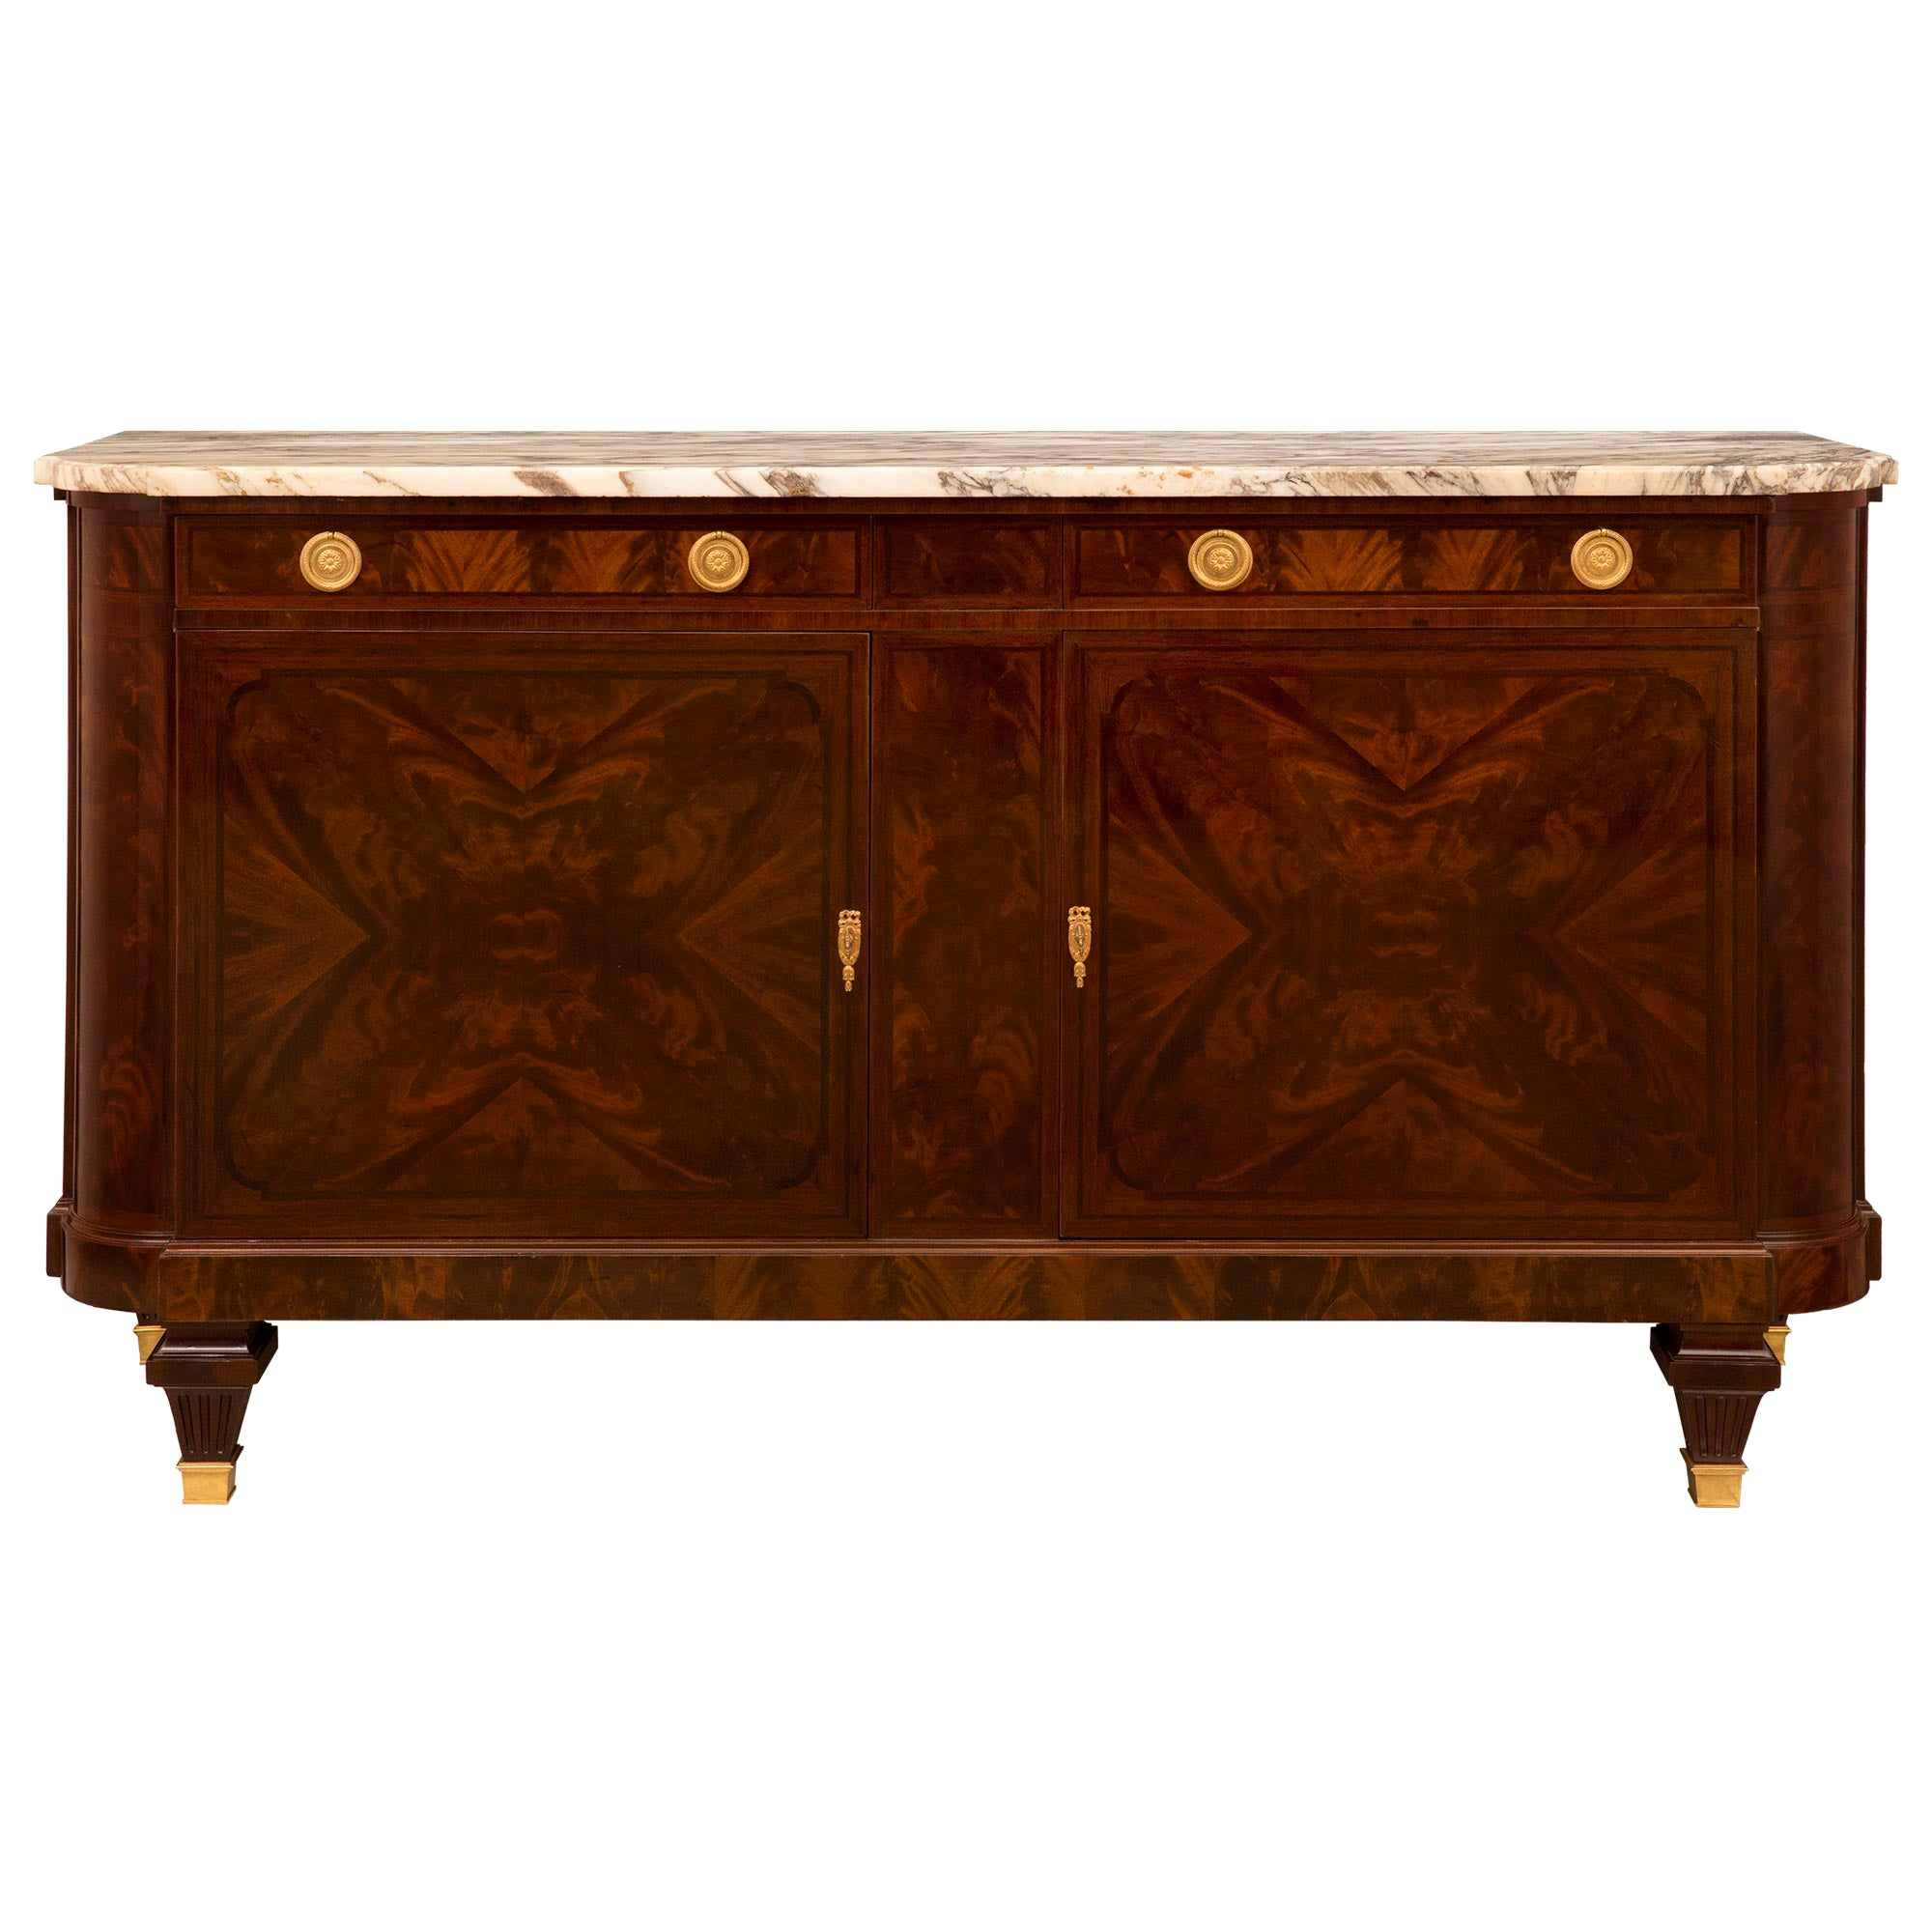 French 19th Century Louis XVI Style Crouch Mahogany Buffet